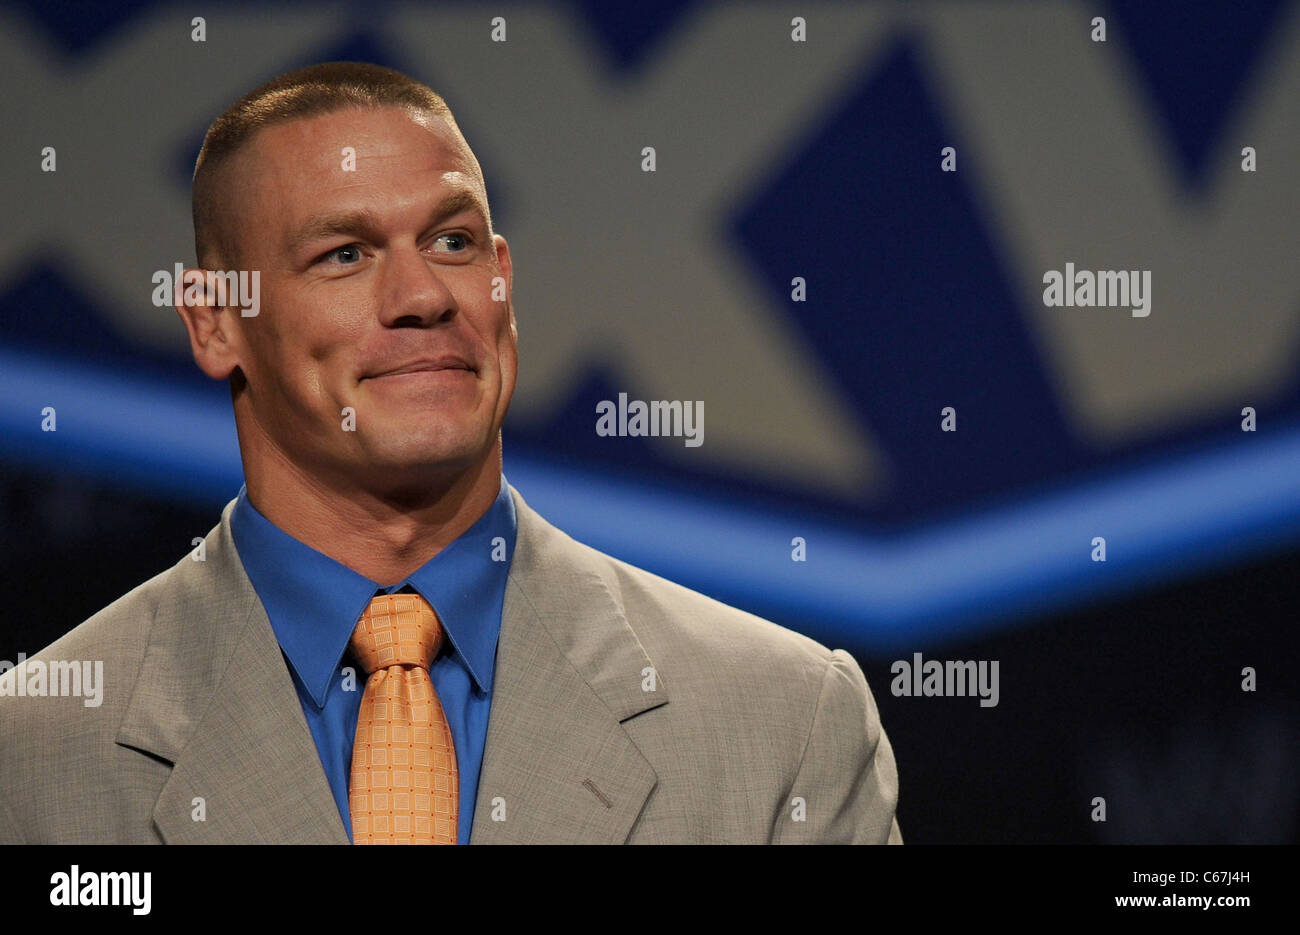 John Cena Stock Photos & John Cena Stock Images - Alamy